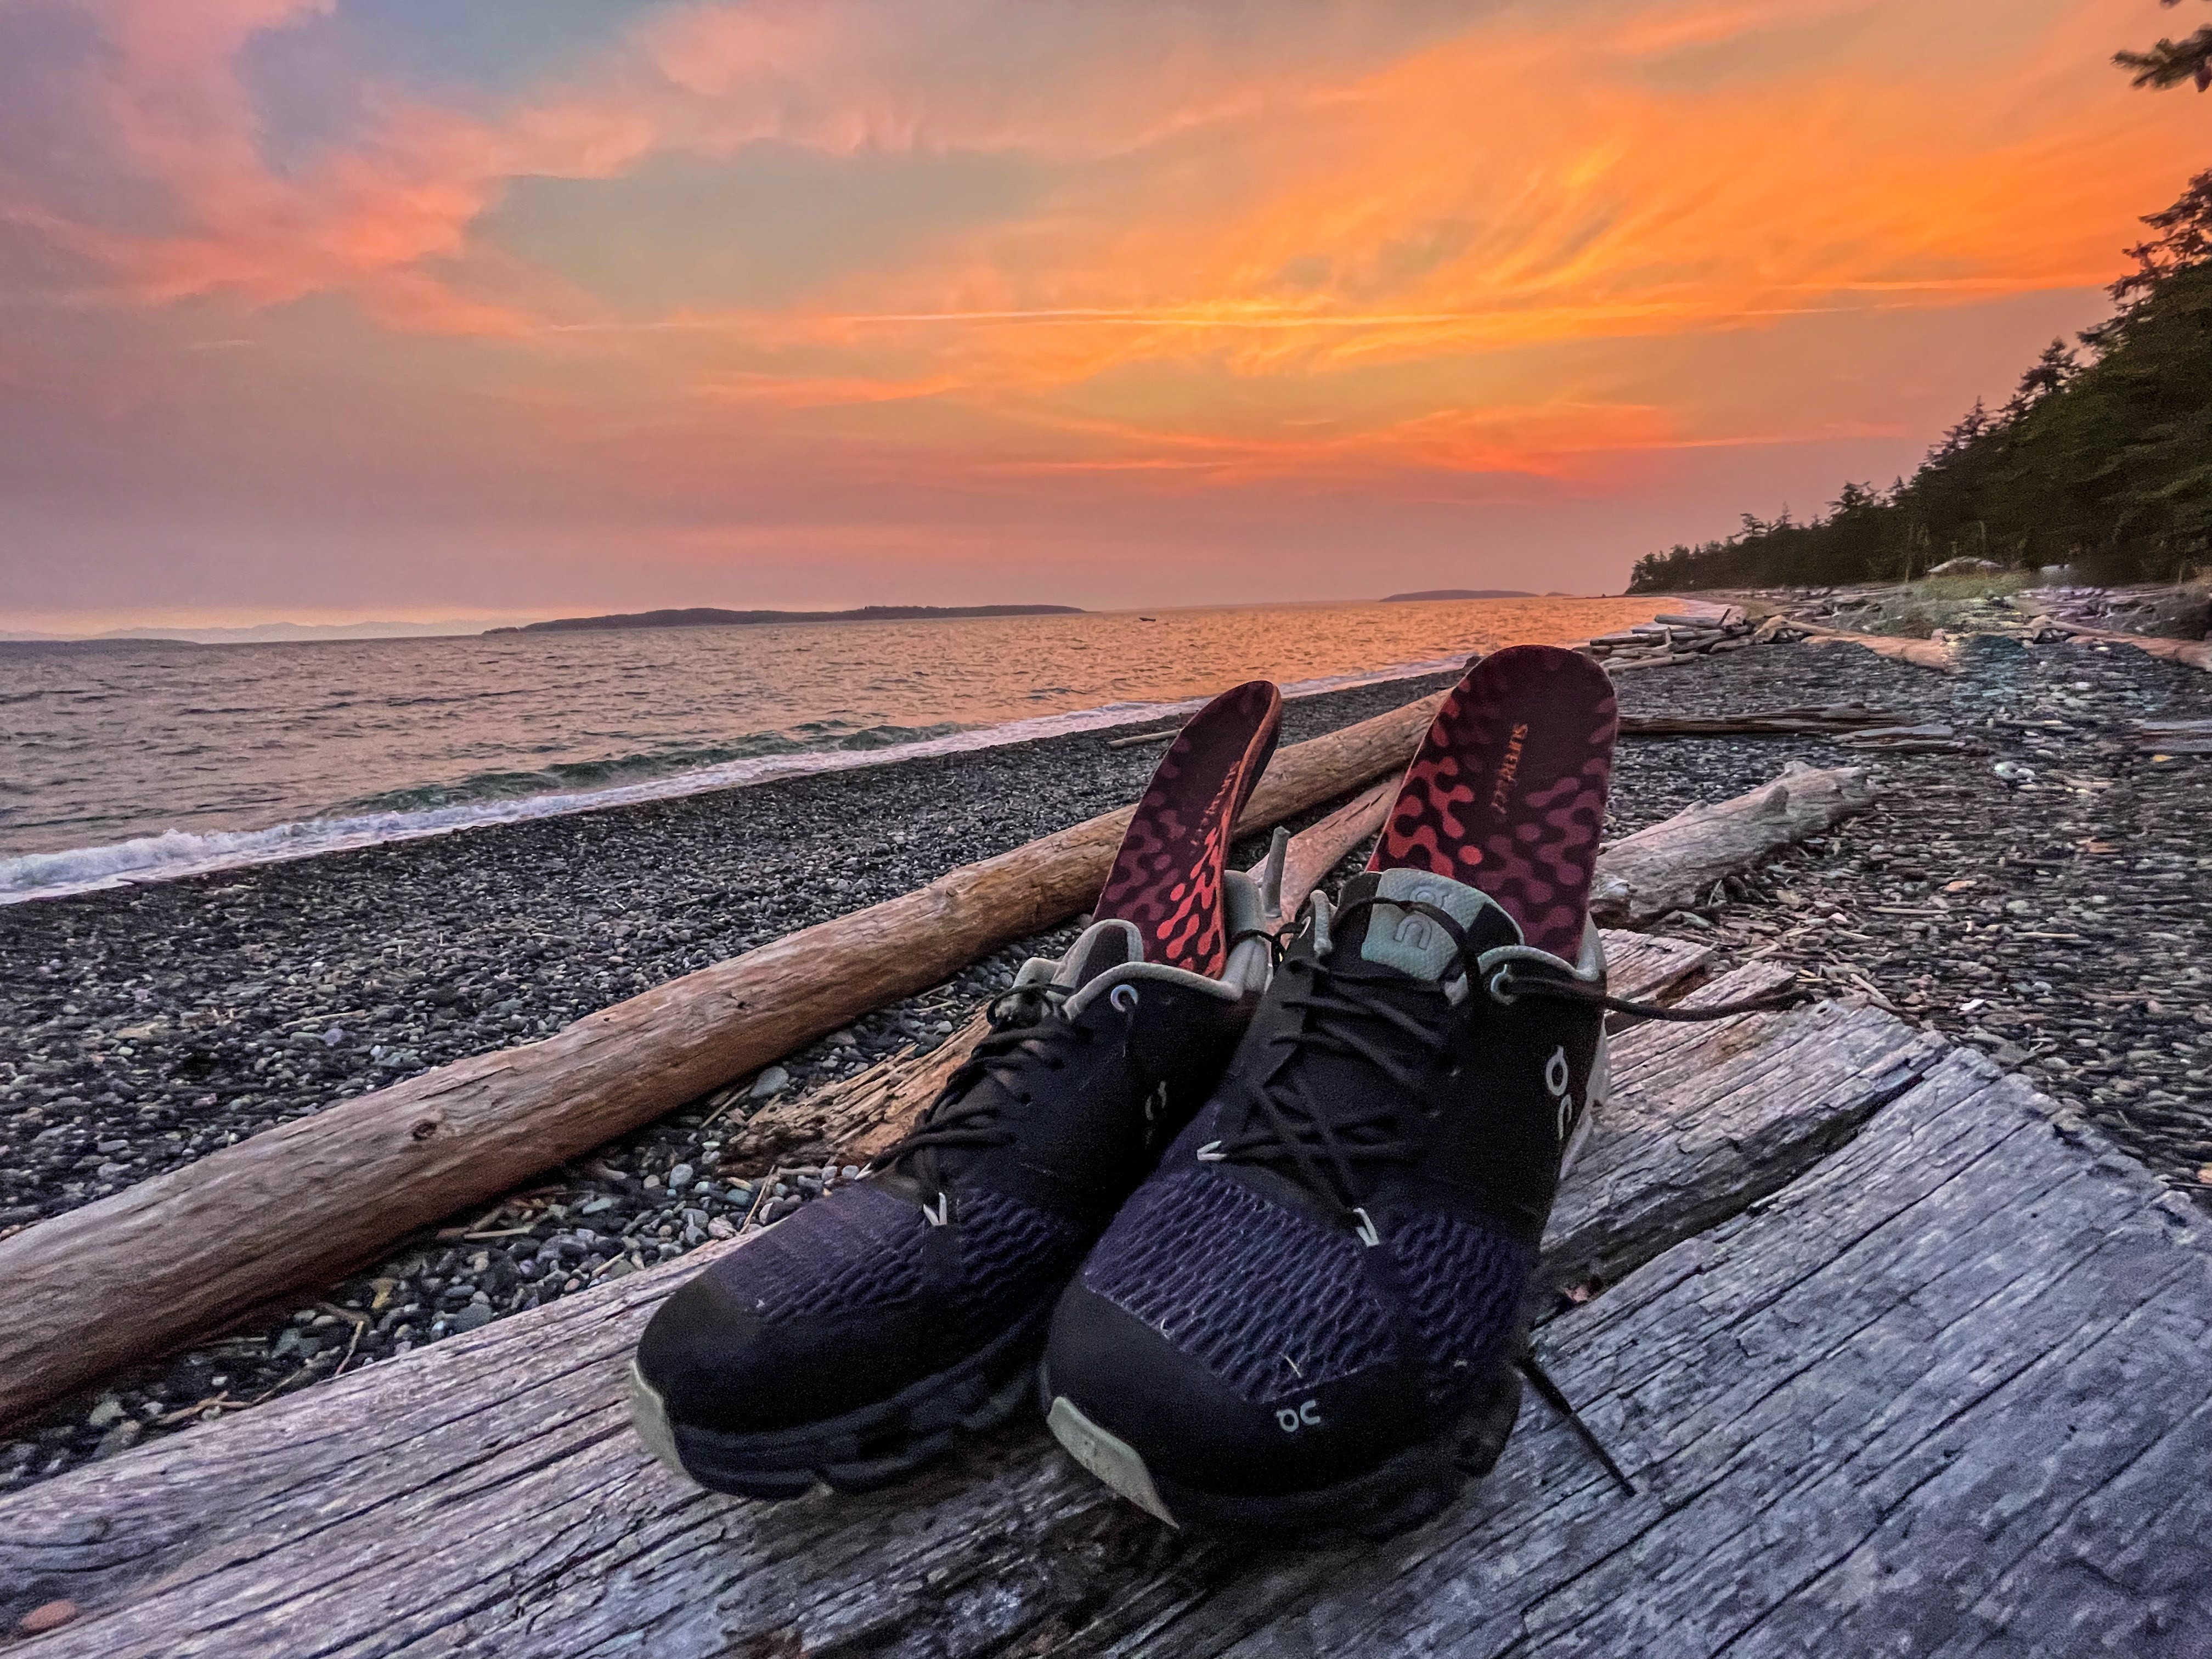 ADAPT Running Insoles in a pair of On running shoes set on a Pacific Northwest rocky beach at sunset